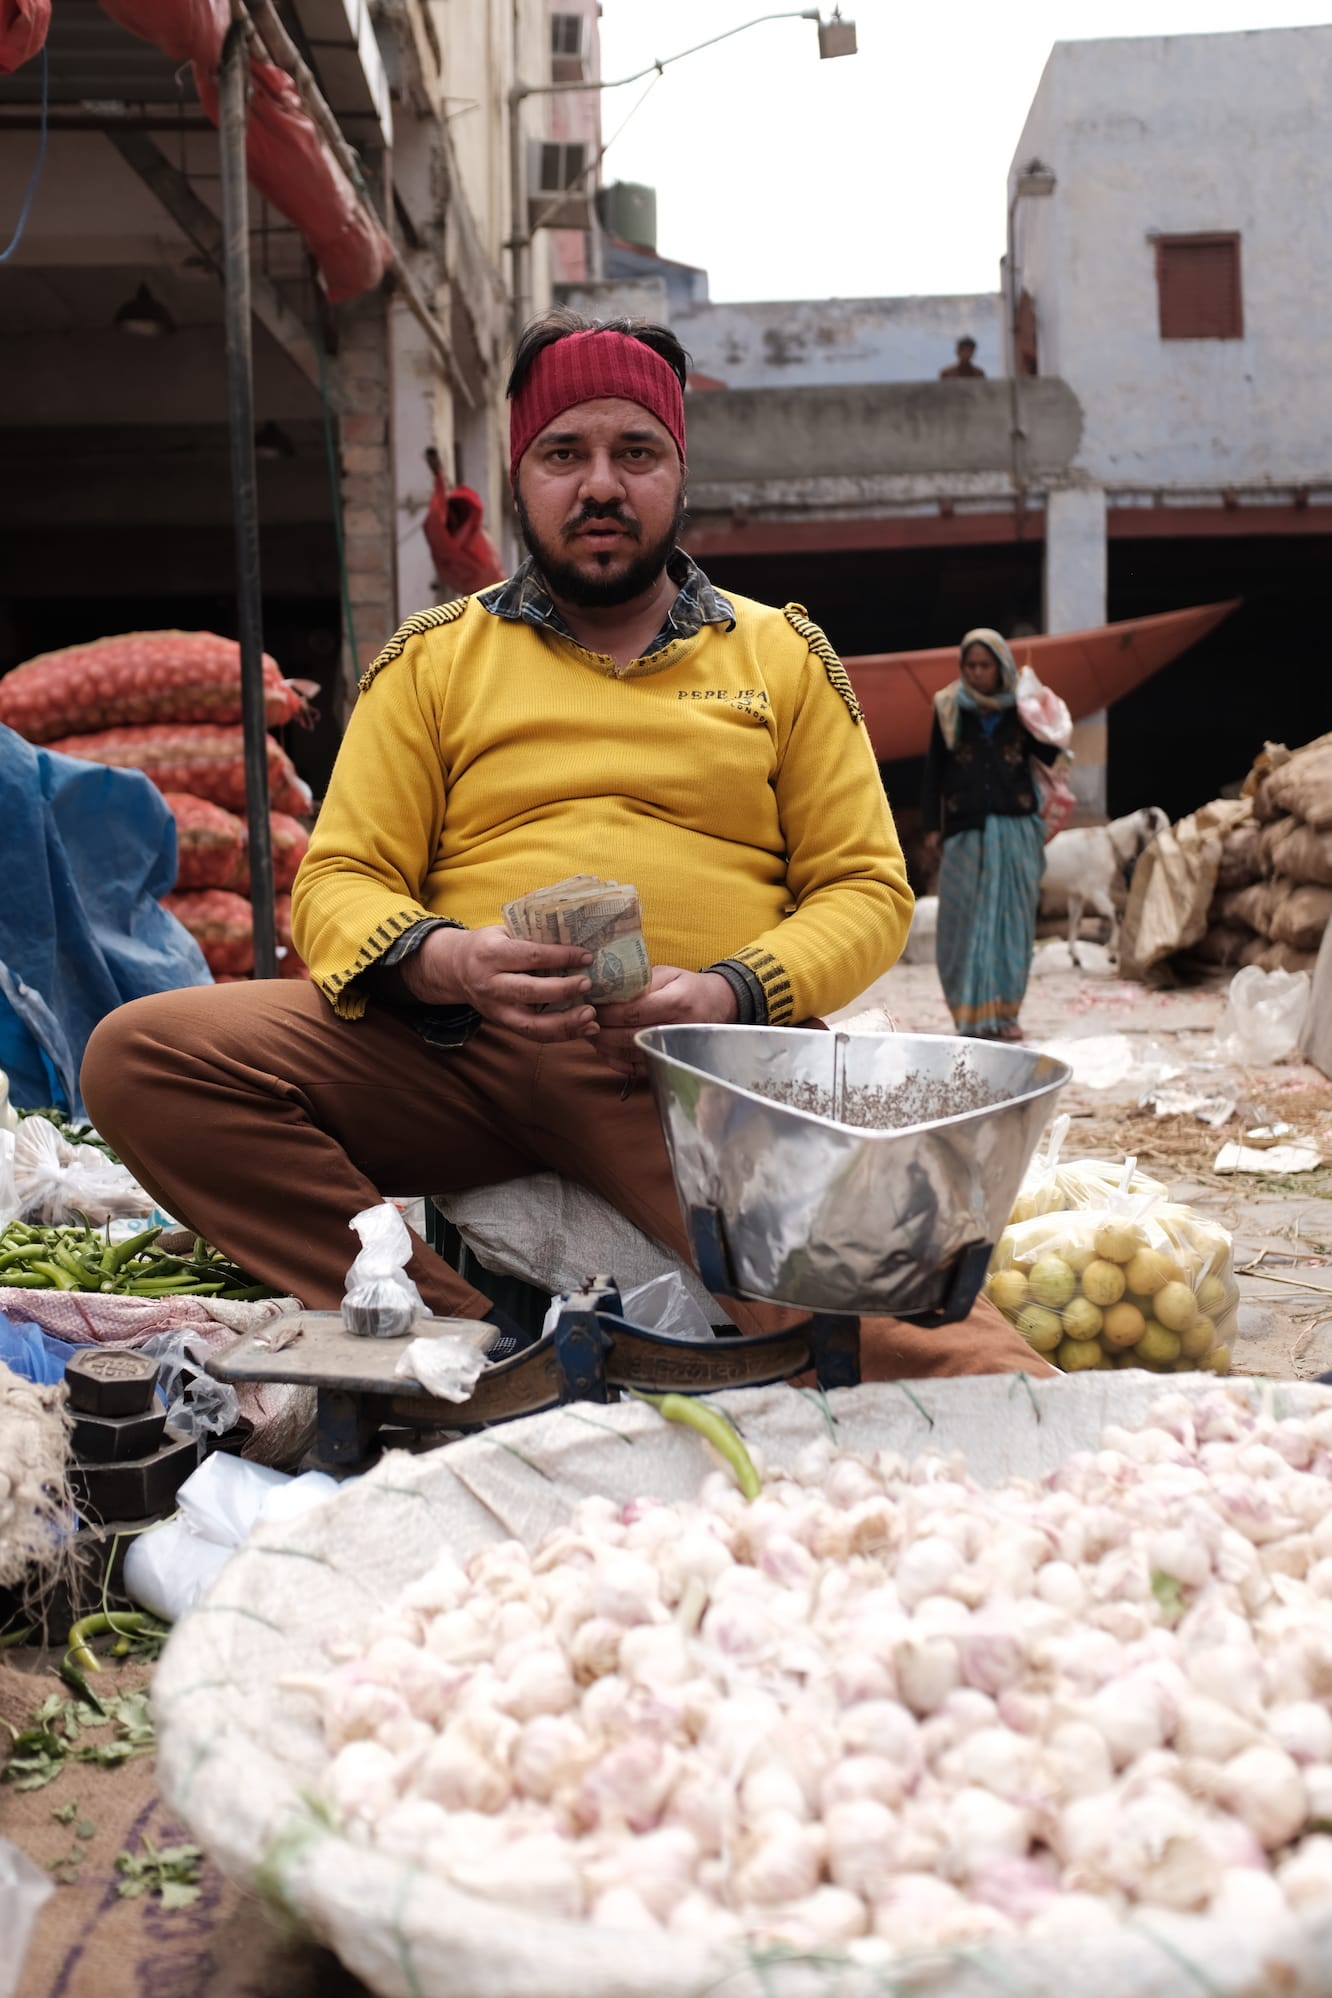 A Vegetable Man Counting Money in Delhi